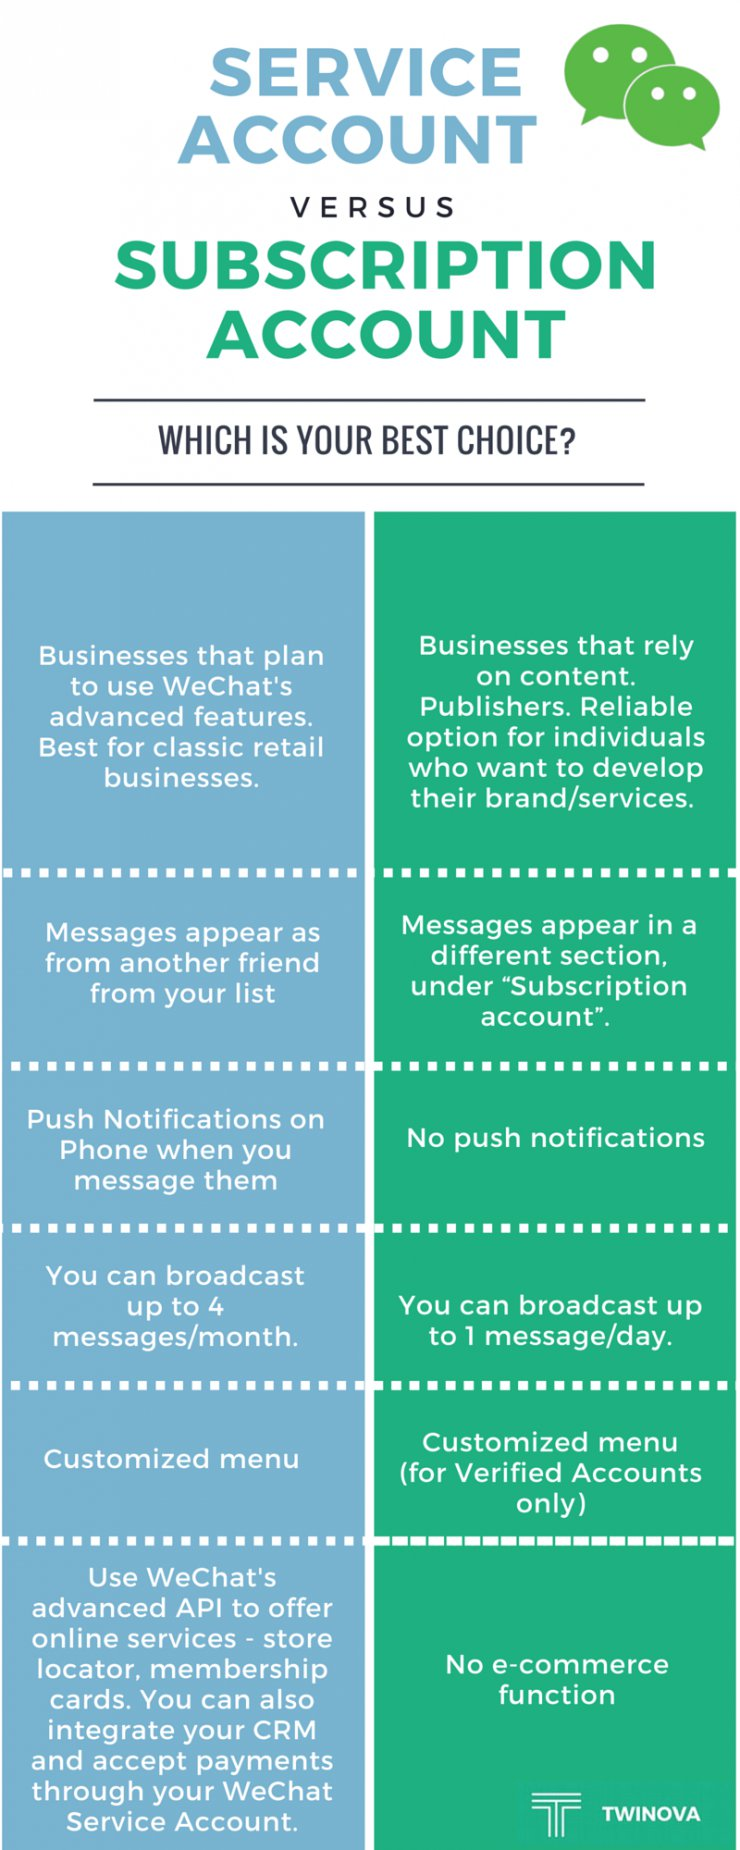 WeChat Service Account vs WeChat Subscription Account comparison